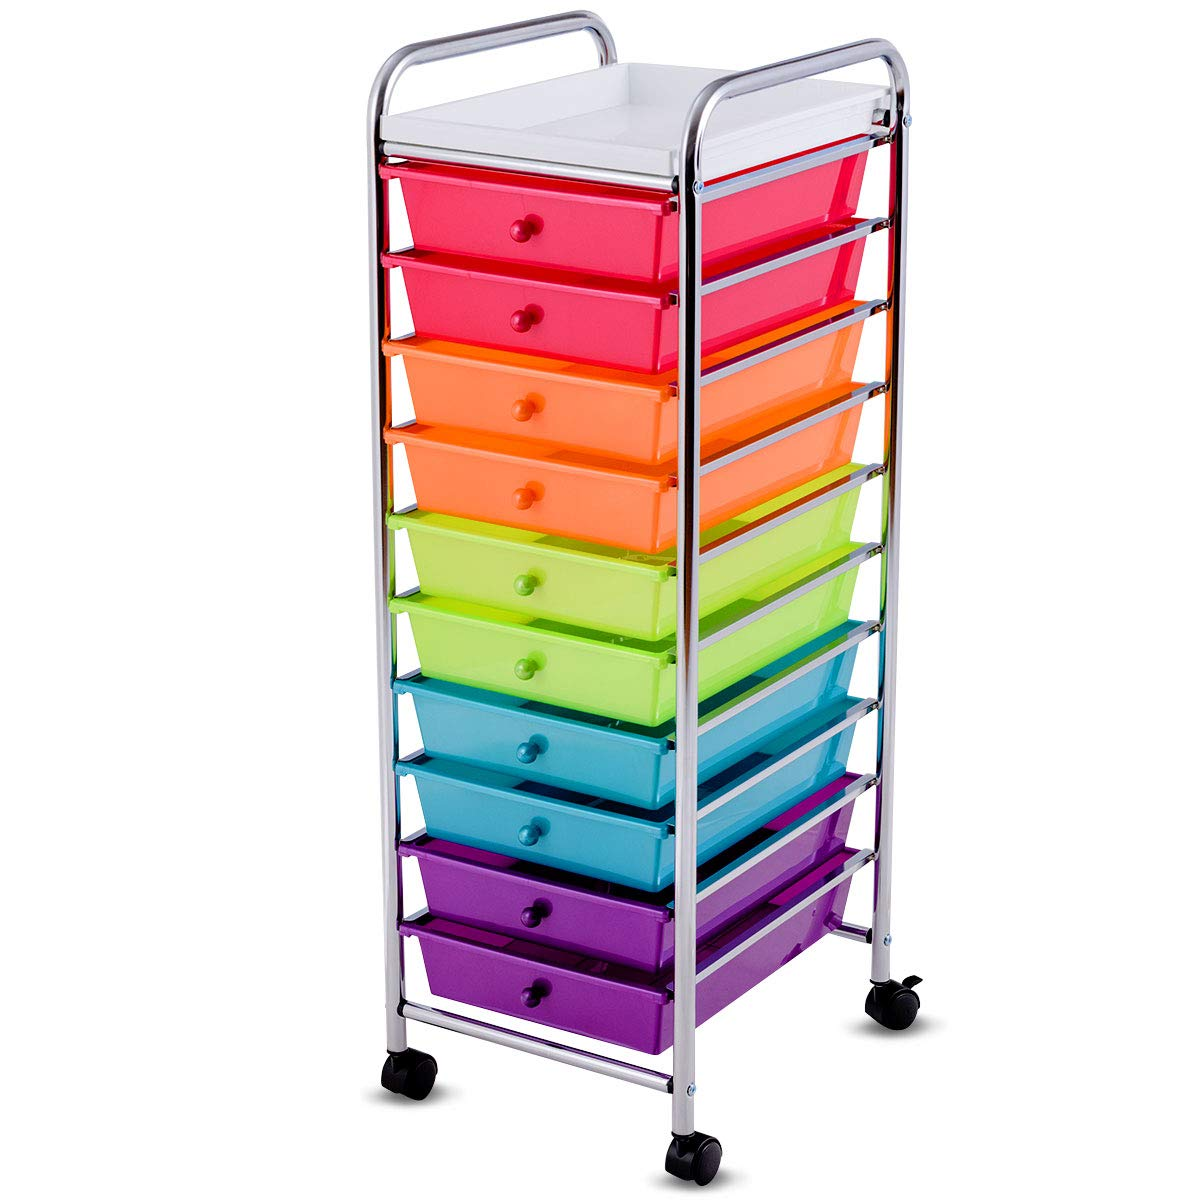 Giantex 10-Drawer Organizer Cart, Pearlescent Multi-Color Mobile Utility Trolley Cart Home Office School Scrapbook Paper Organizer Shelf w/Removable Top Tray, Multicolor by Giantex